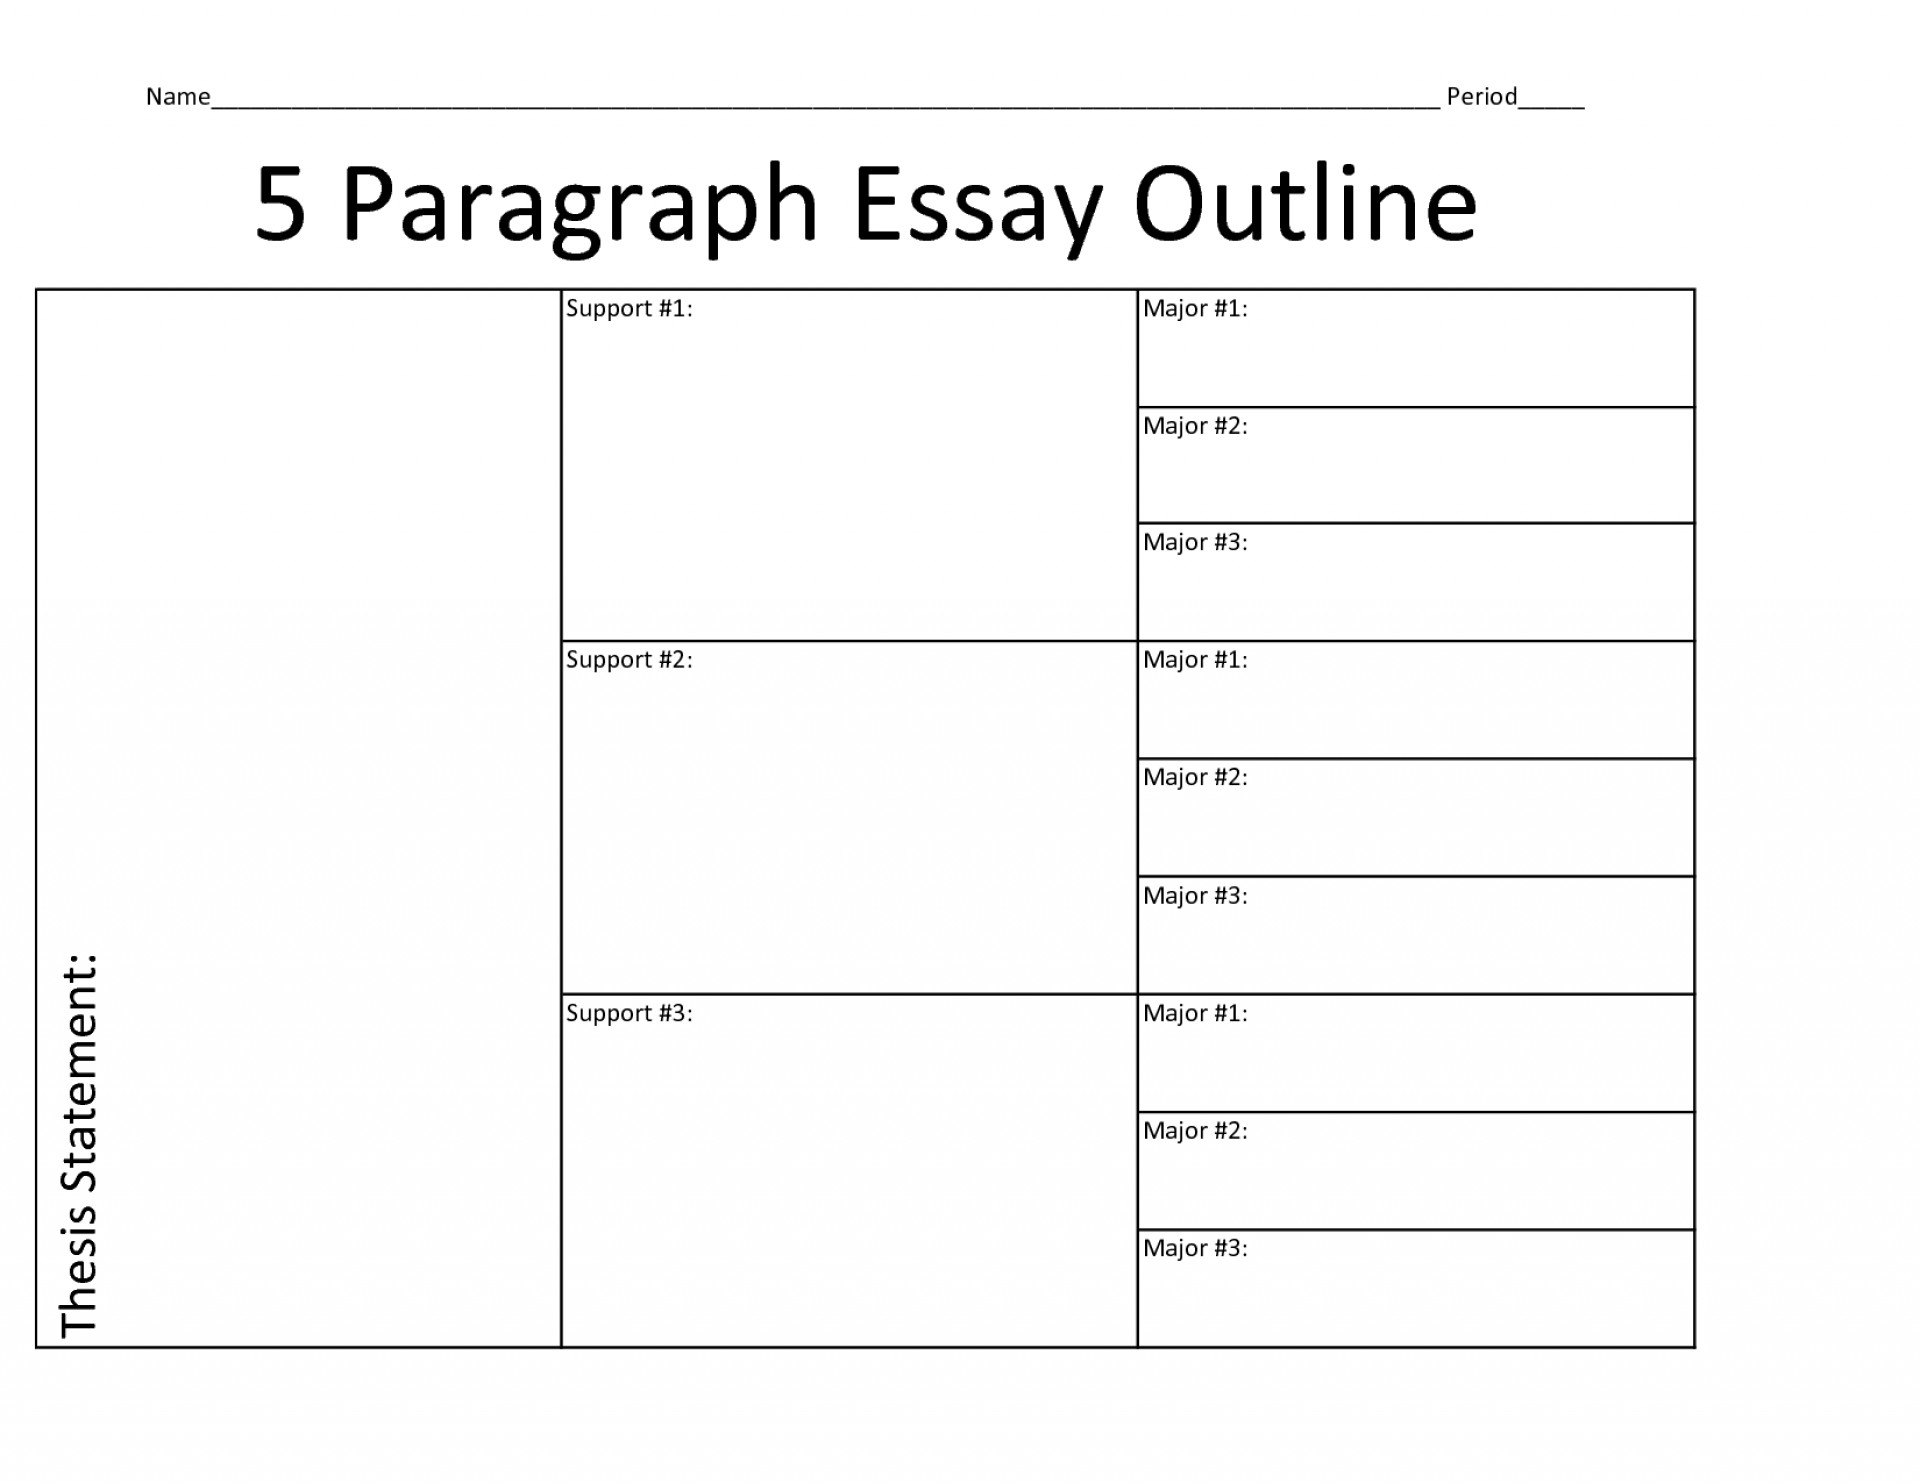 019 Graphic Organizers Executive Functioning Mr Brown039s Paragraph Essay Outline L Amazing 5 Google Doc Printable High School 1920